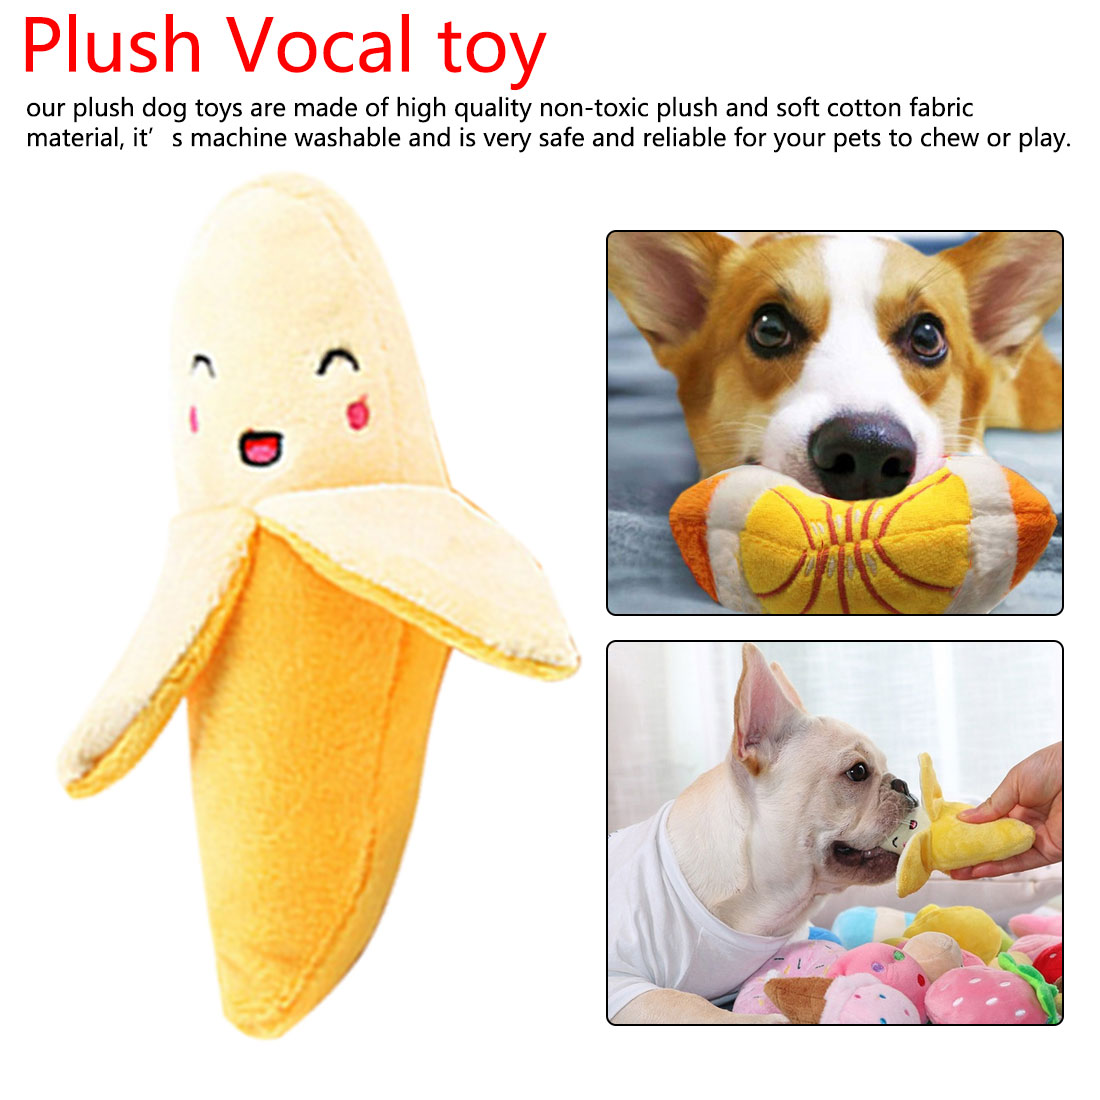 Stuffed Toy Squeaker Squeaky Plush Sound Fruits Vegetables watermelon stars Feeding Carrot Banana image